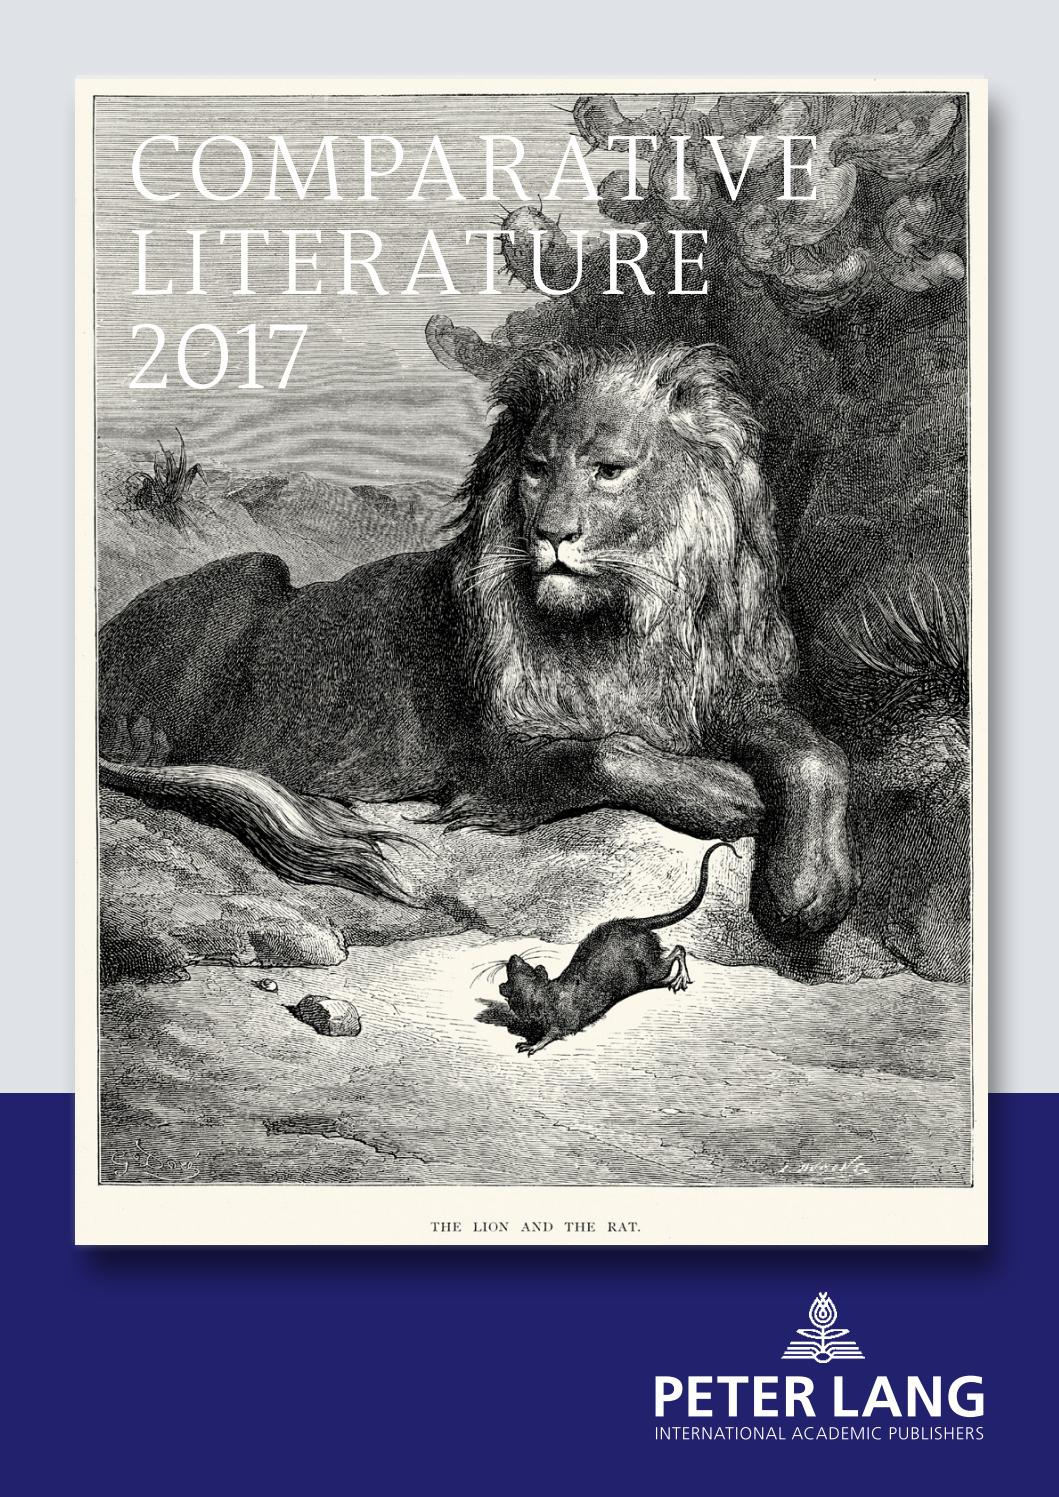 Comparative Literature Catalogue 2017 By Peter Lang